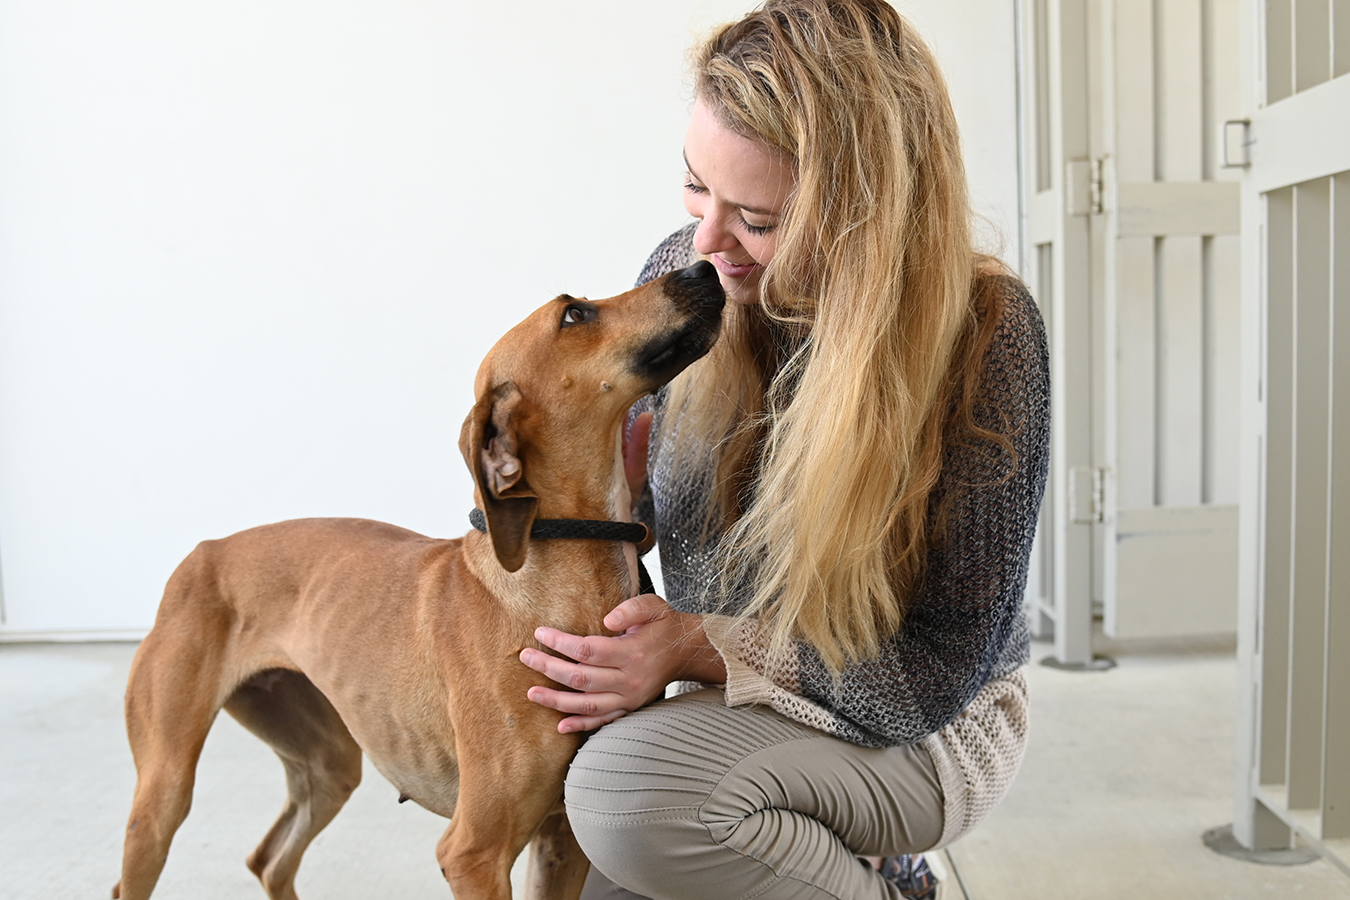 Orphan dog shows her appreciation shortly after arrival